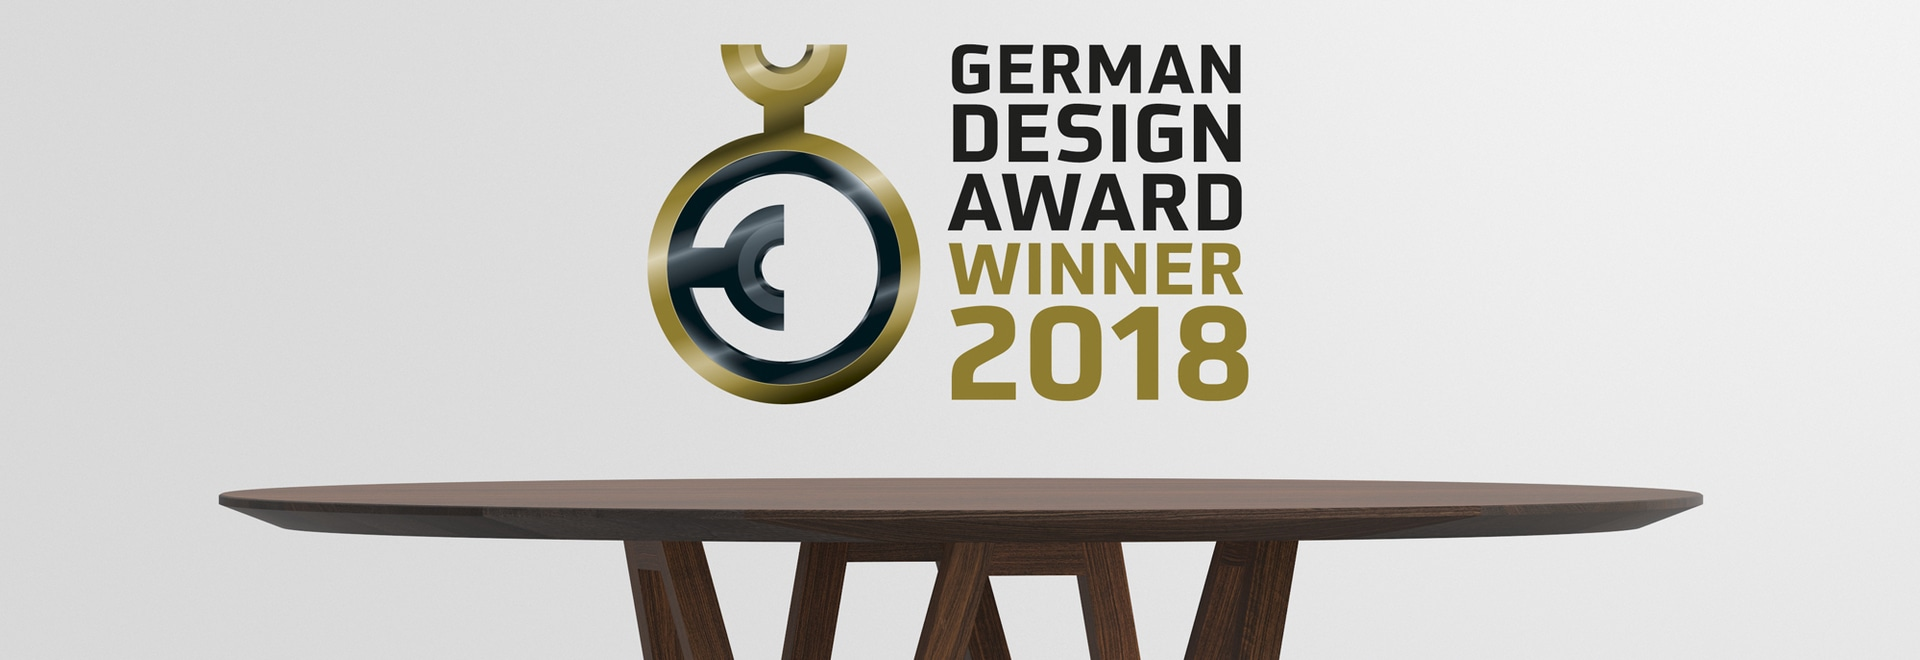 CREO vitamin design German Design Award Winner